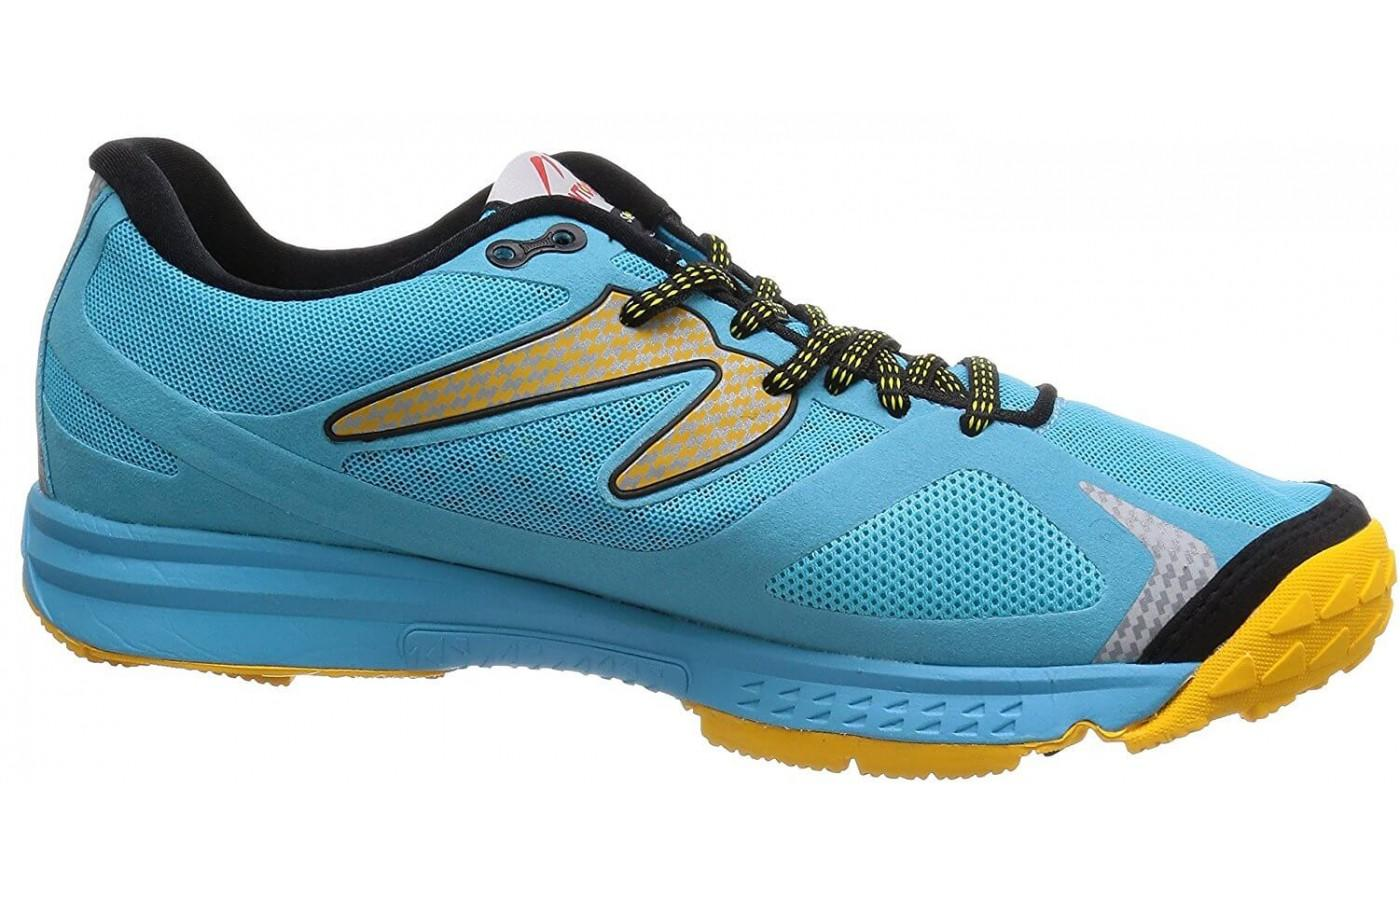 the Newton BoCo Sol is a stylish all-terrain trainer